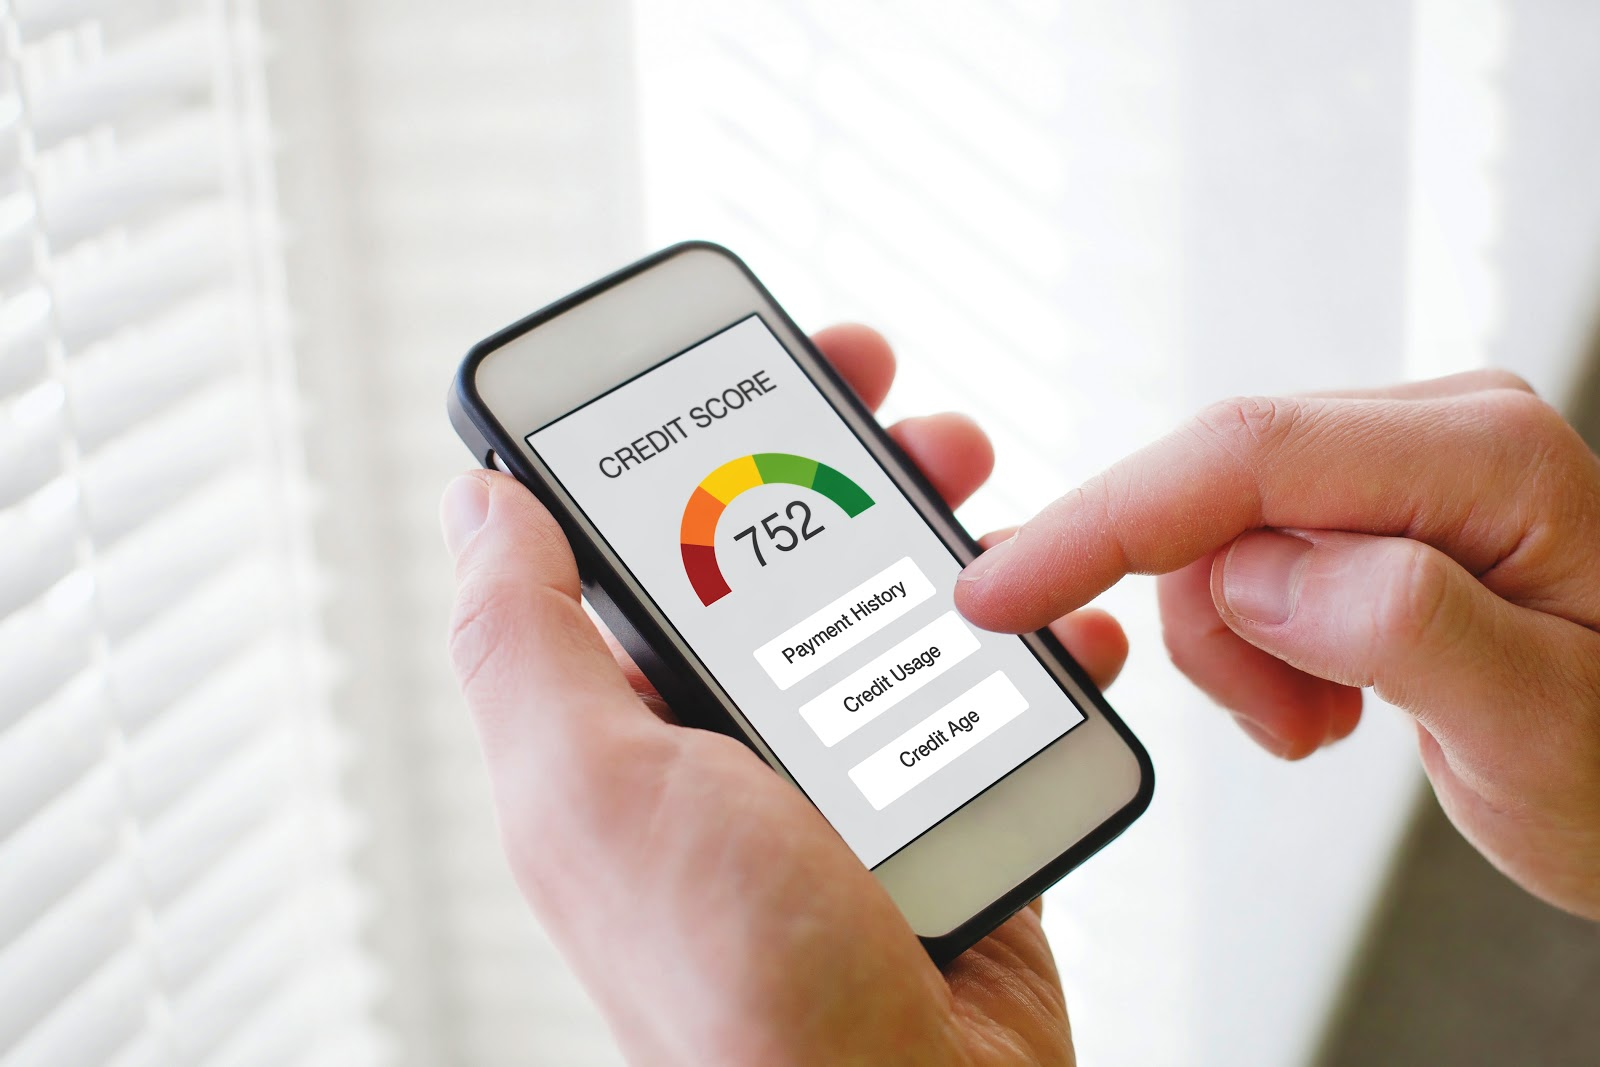 Smartphone displaying a credit score smartphone